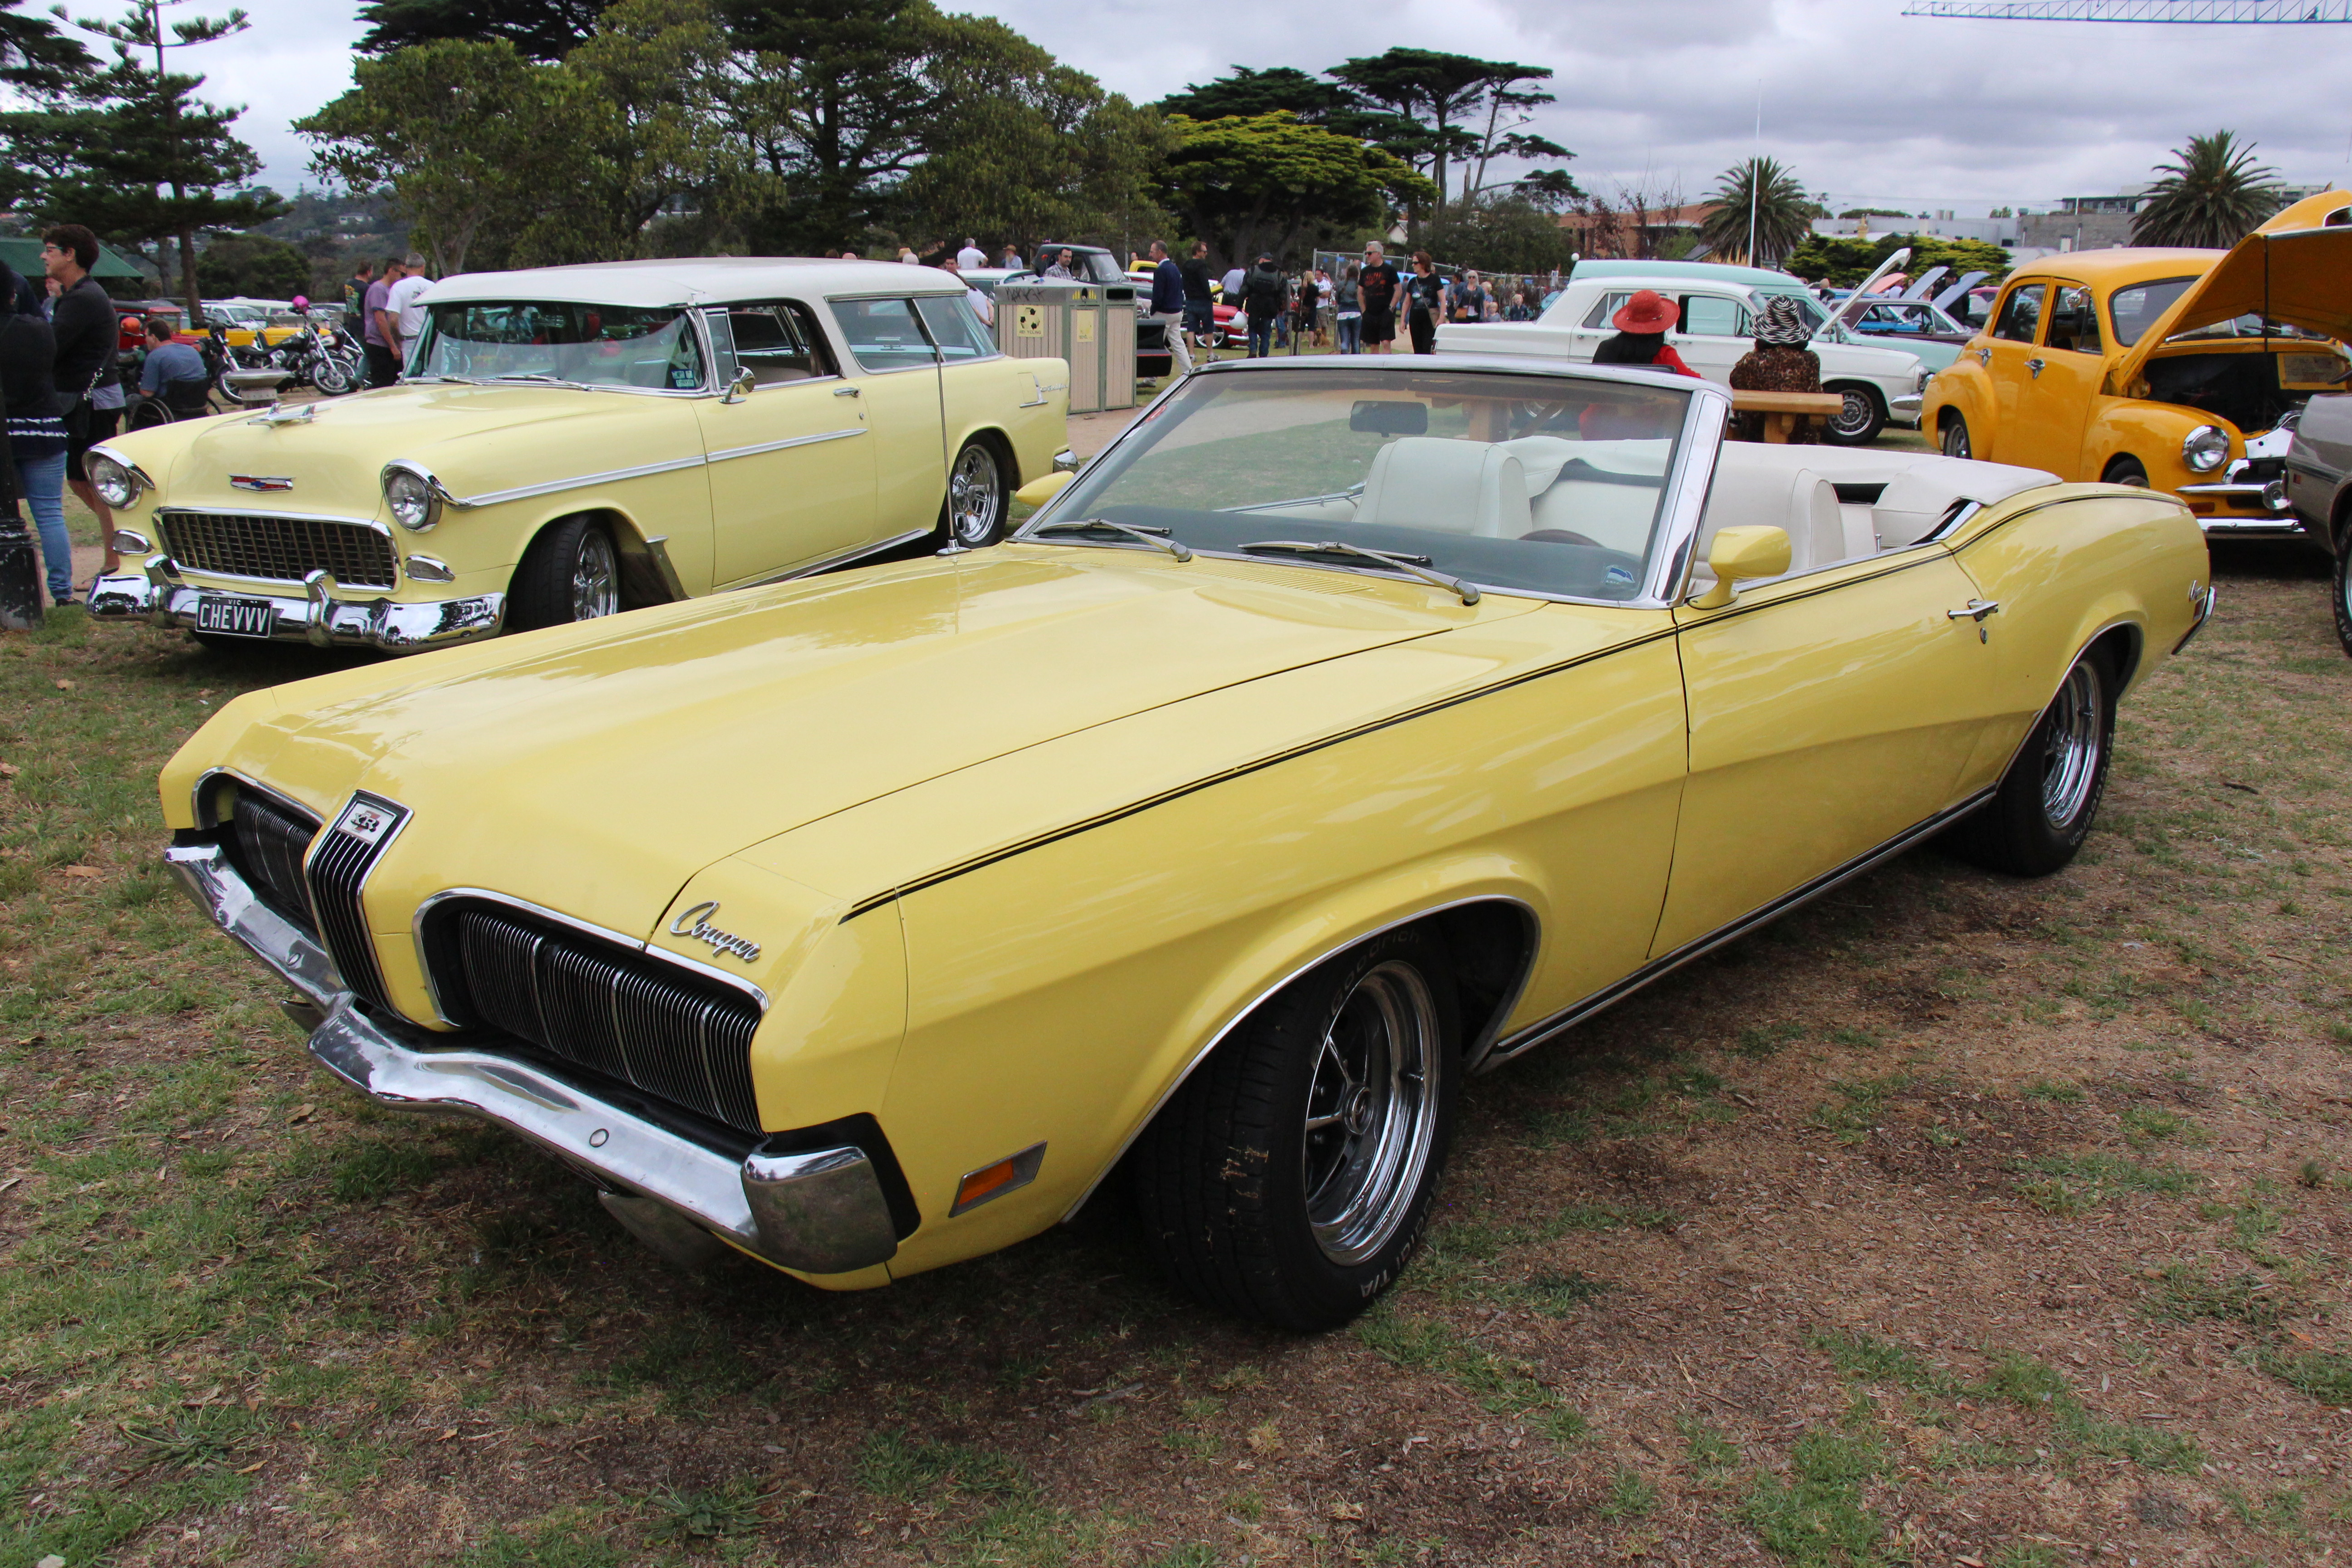 1970 Mercury Cougar Xr7 Eliminator